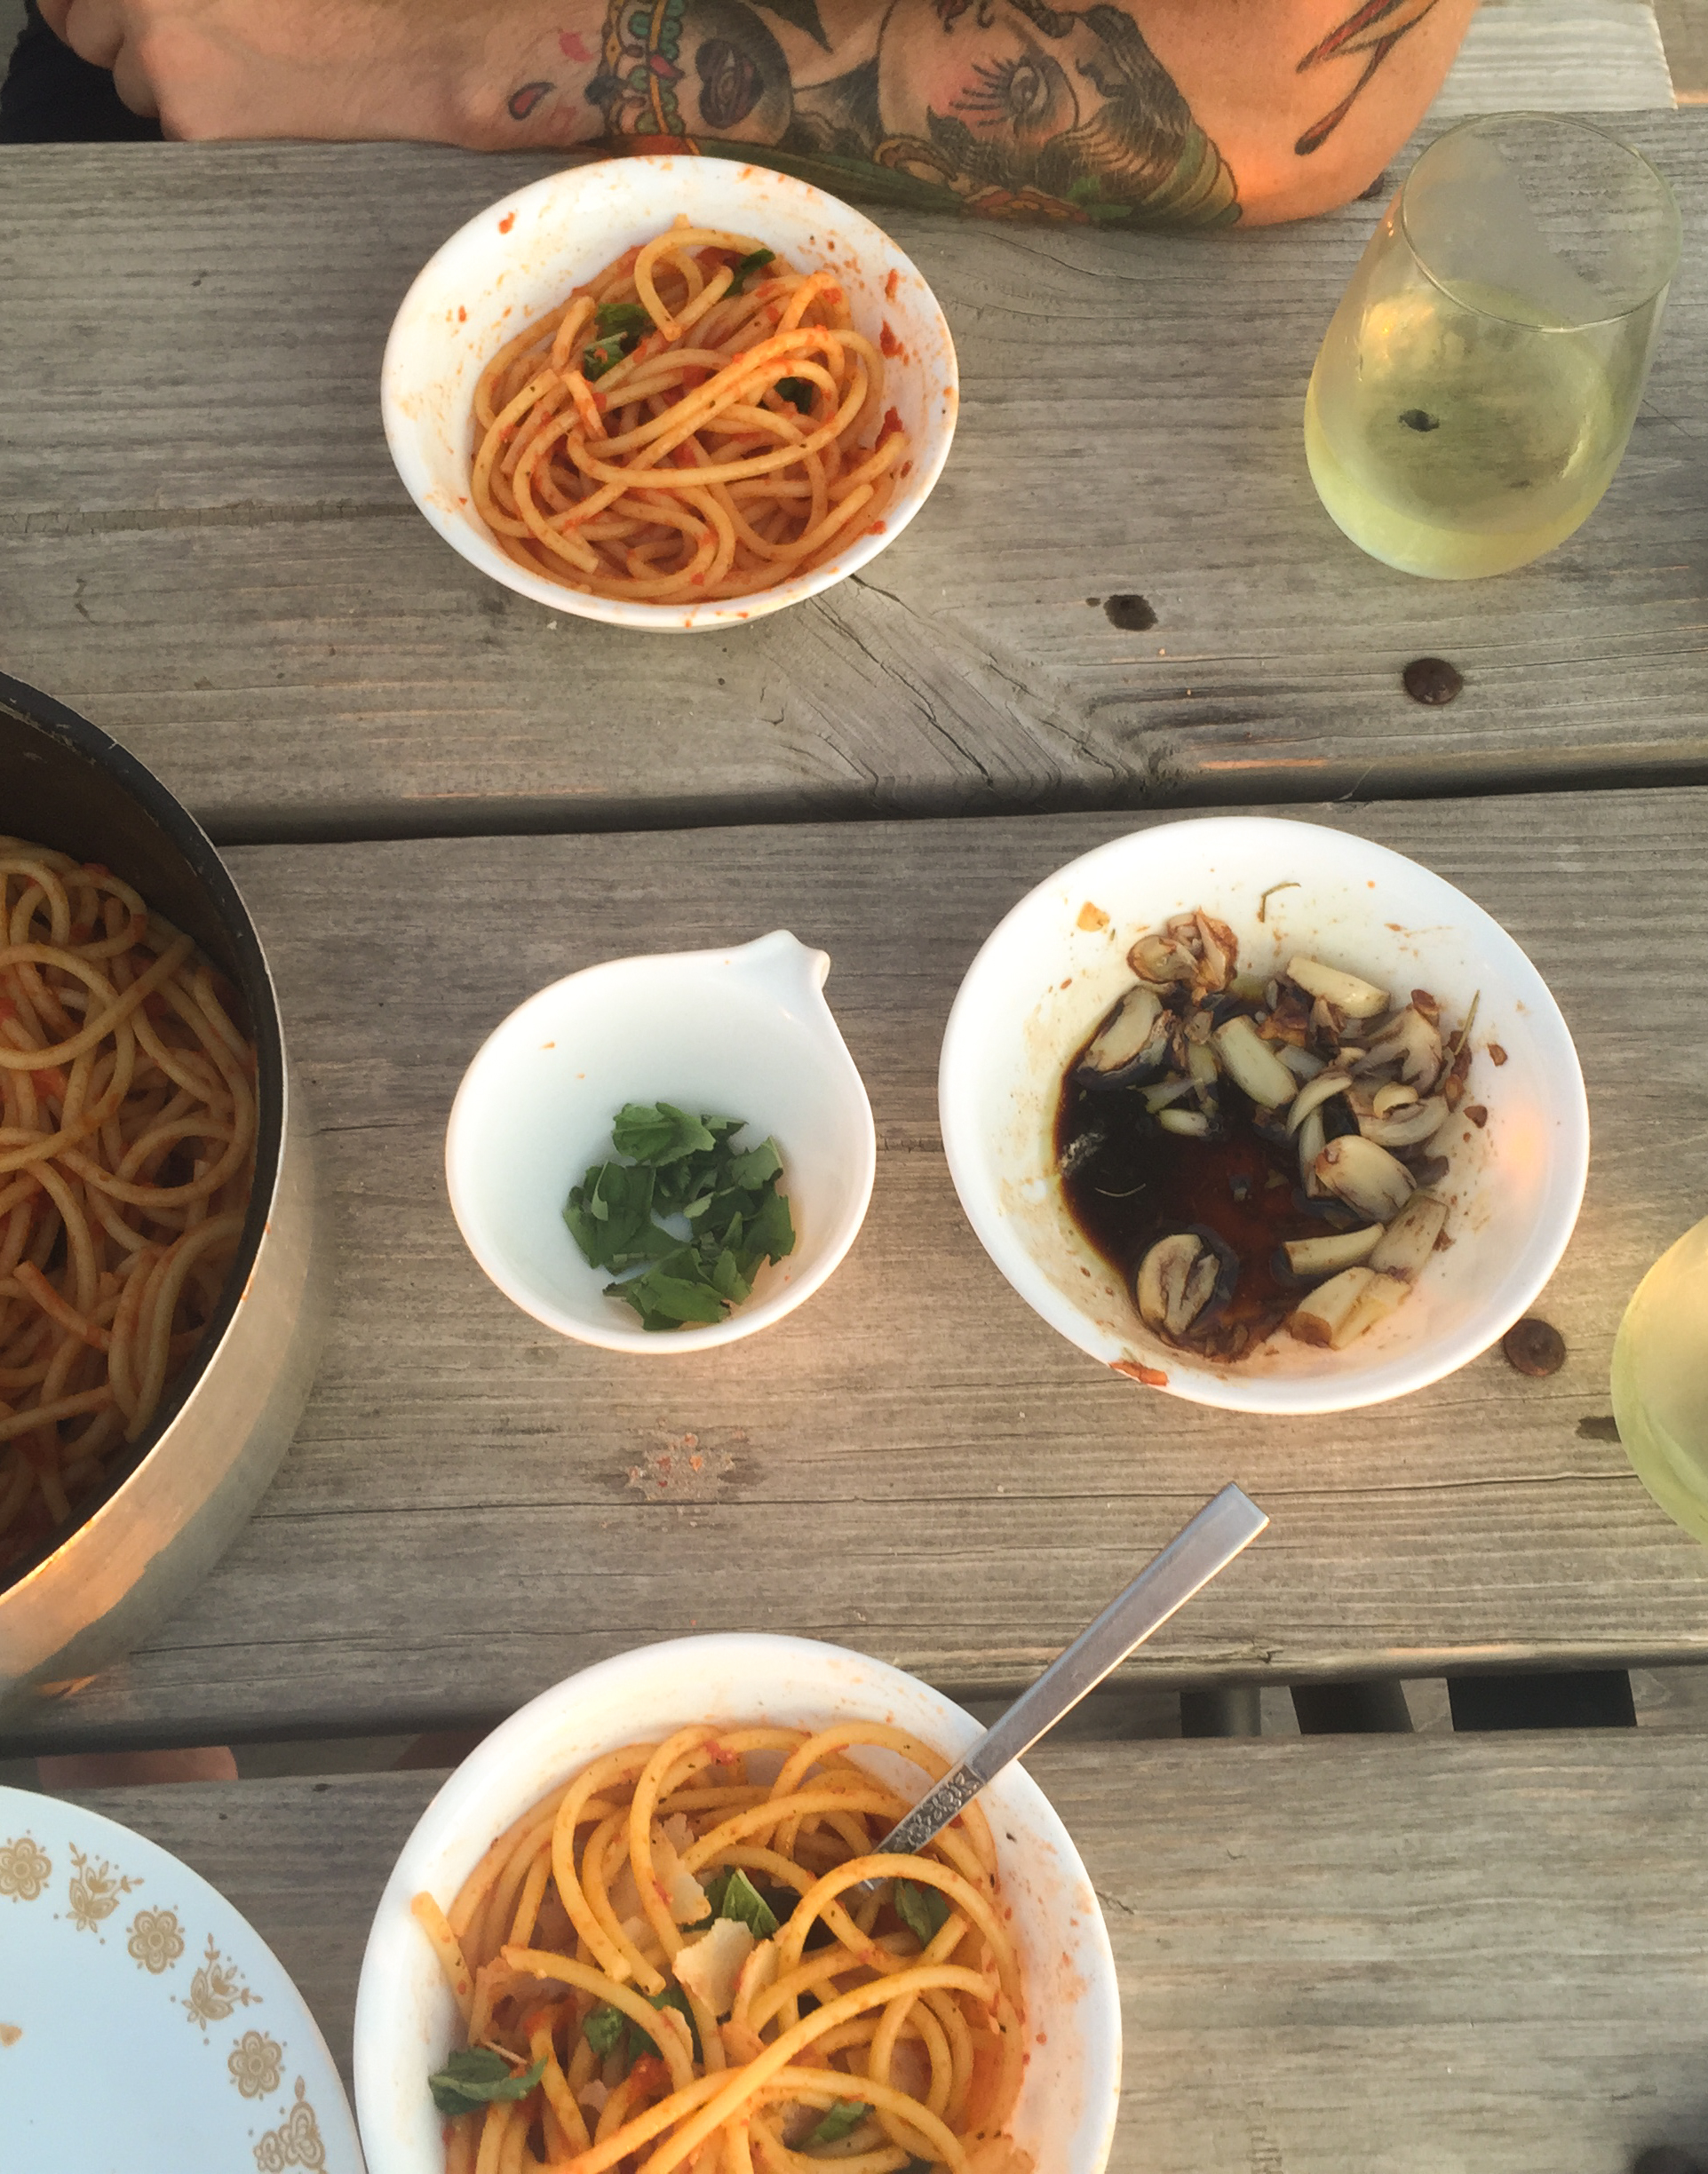 Pasta, bread with roasted garlic and balsamic, and wine on the deck. There's nothing better.